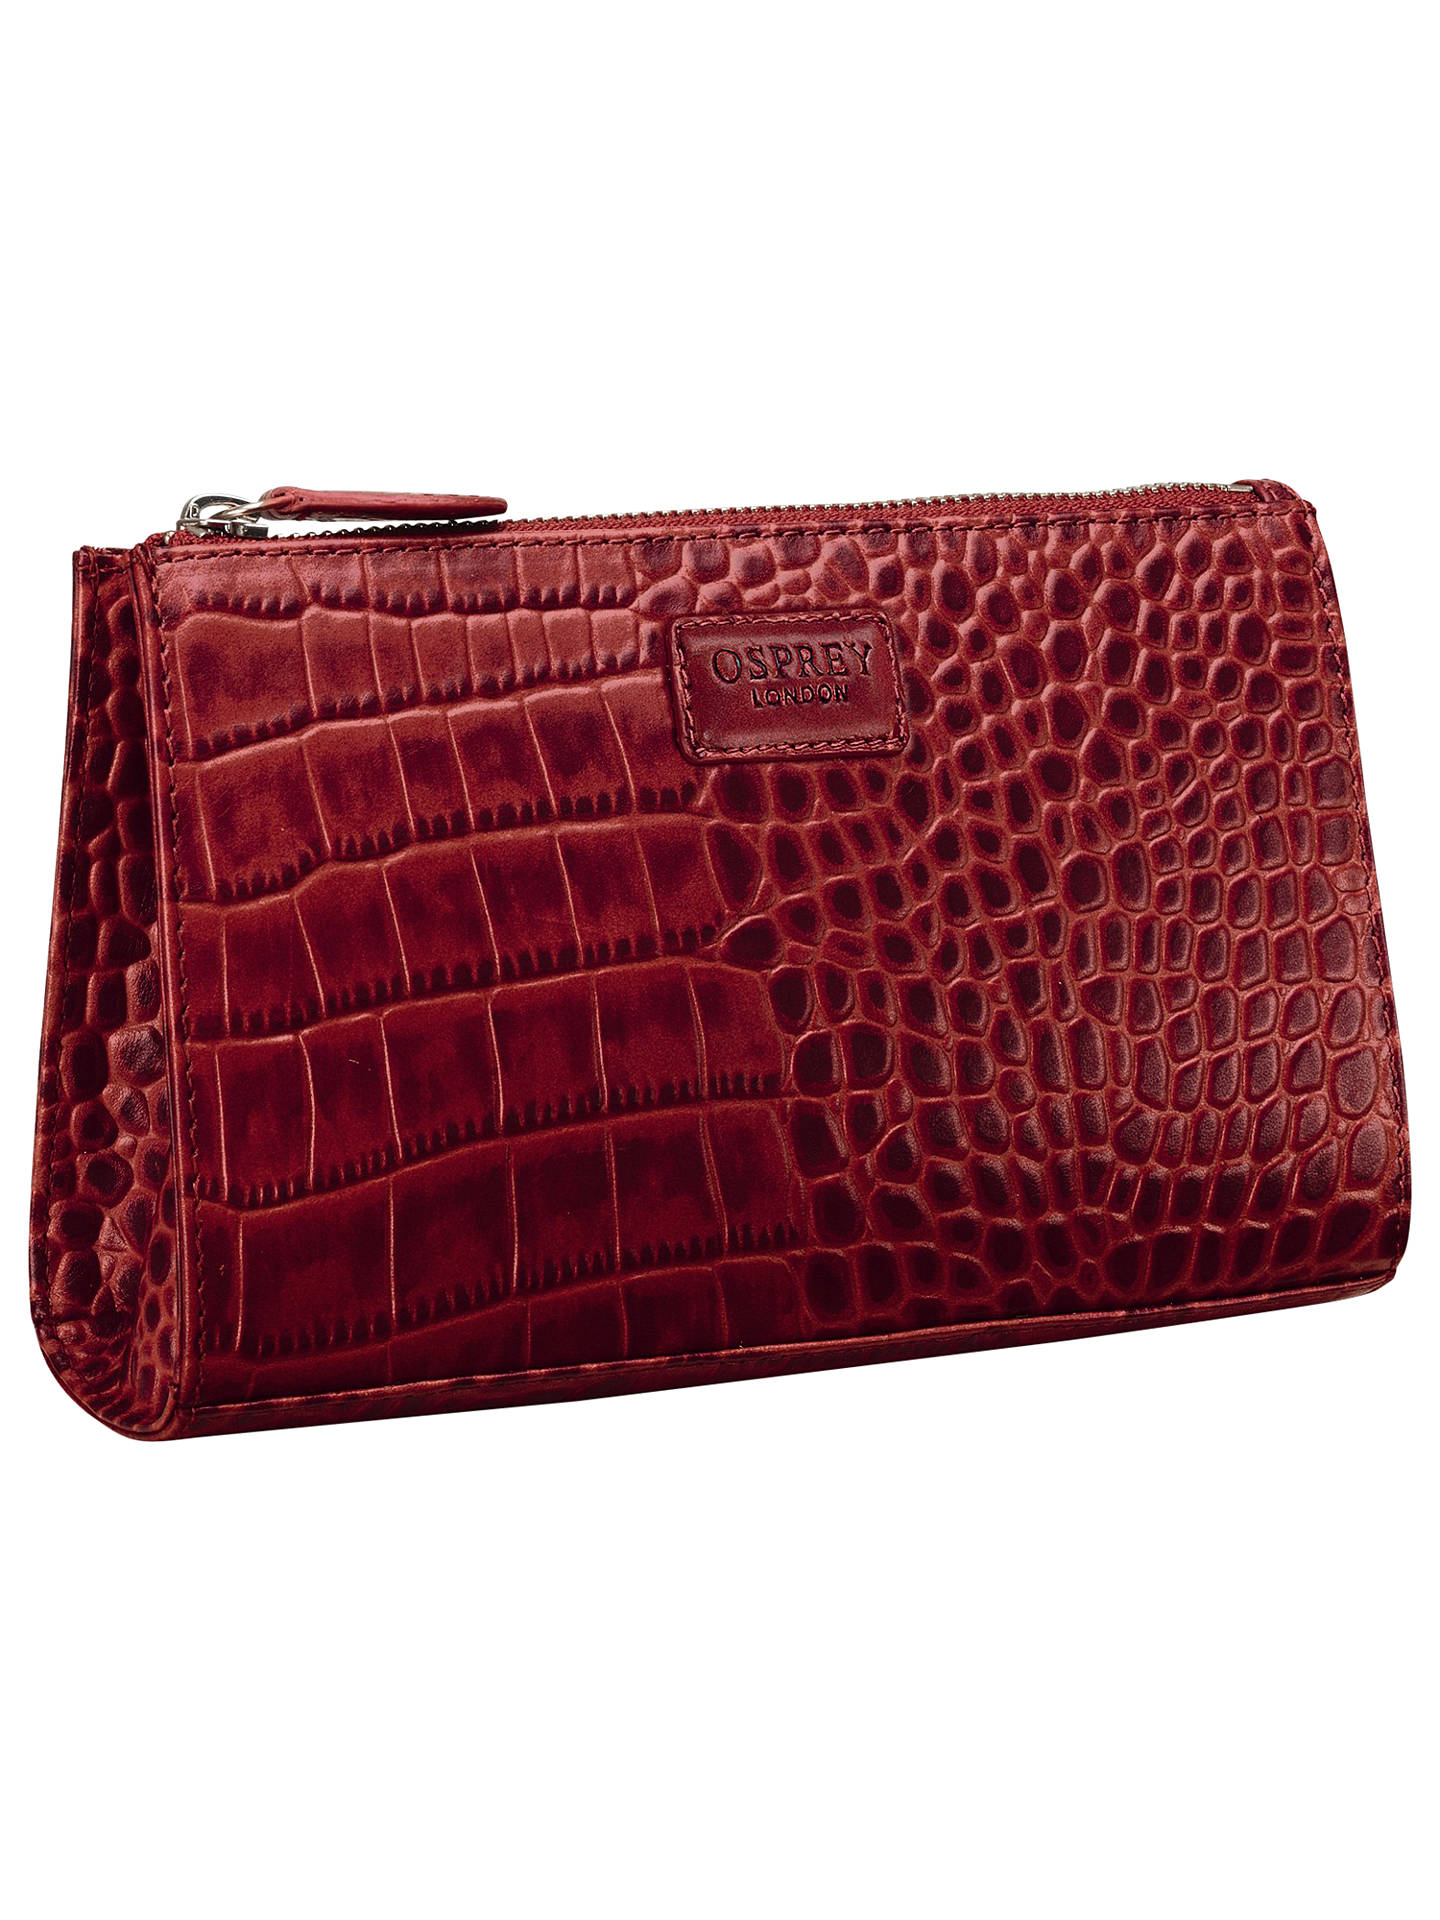 d486d25e2c7c Buy OSPREY LONDON Belle Leather Makeup Bag, Oxblood Online at johnlewis.com